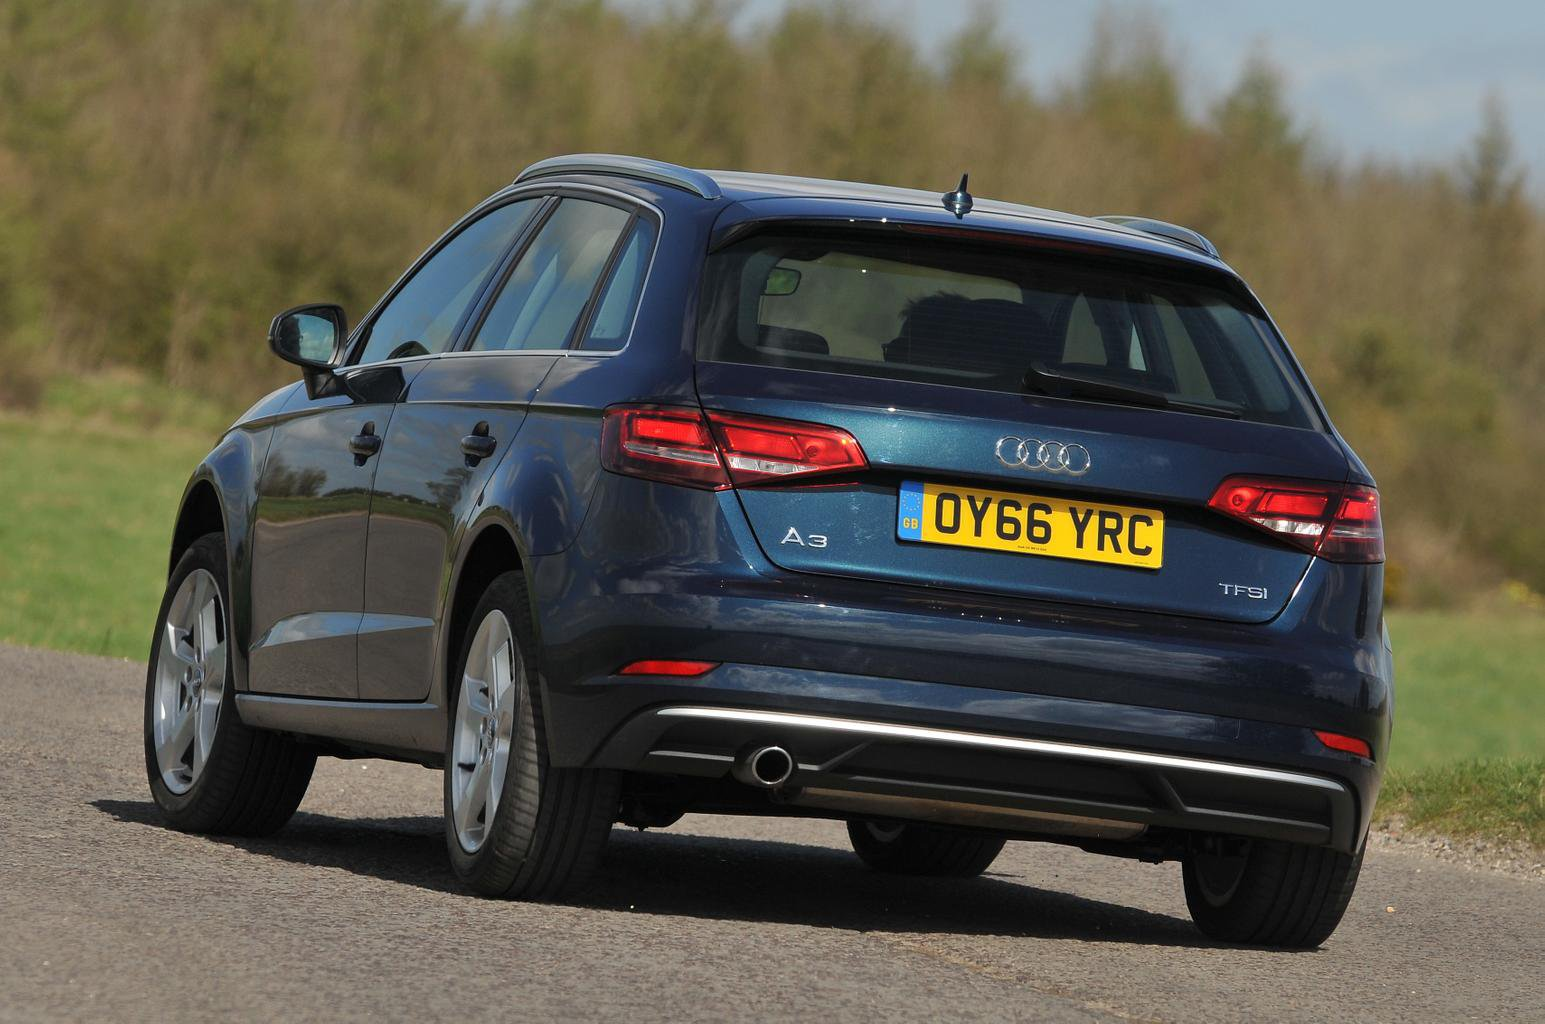 New Volkswagen Golf and Honda Civic vs Audi A3 Sportback